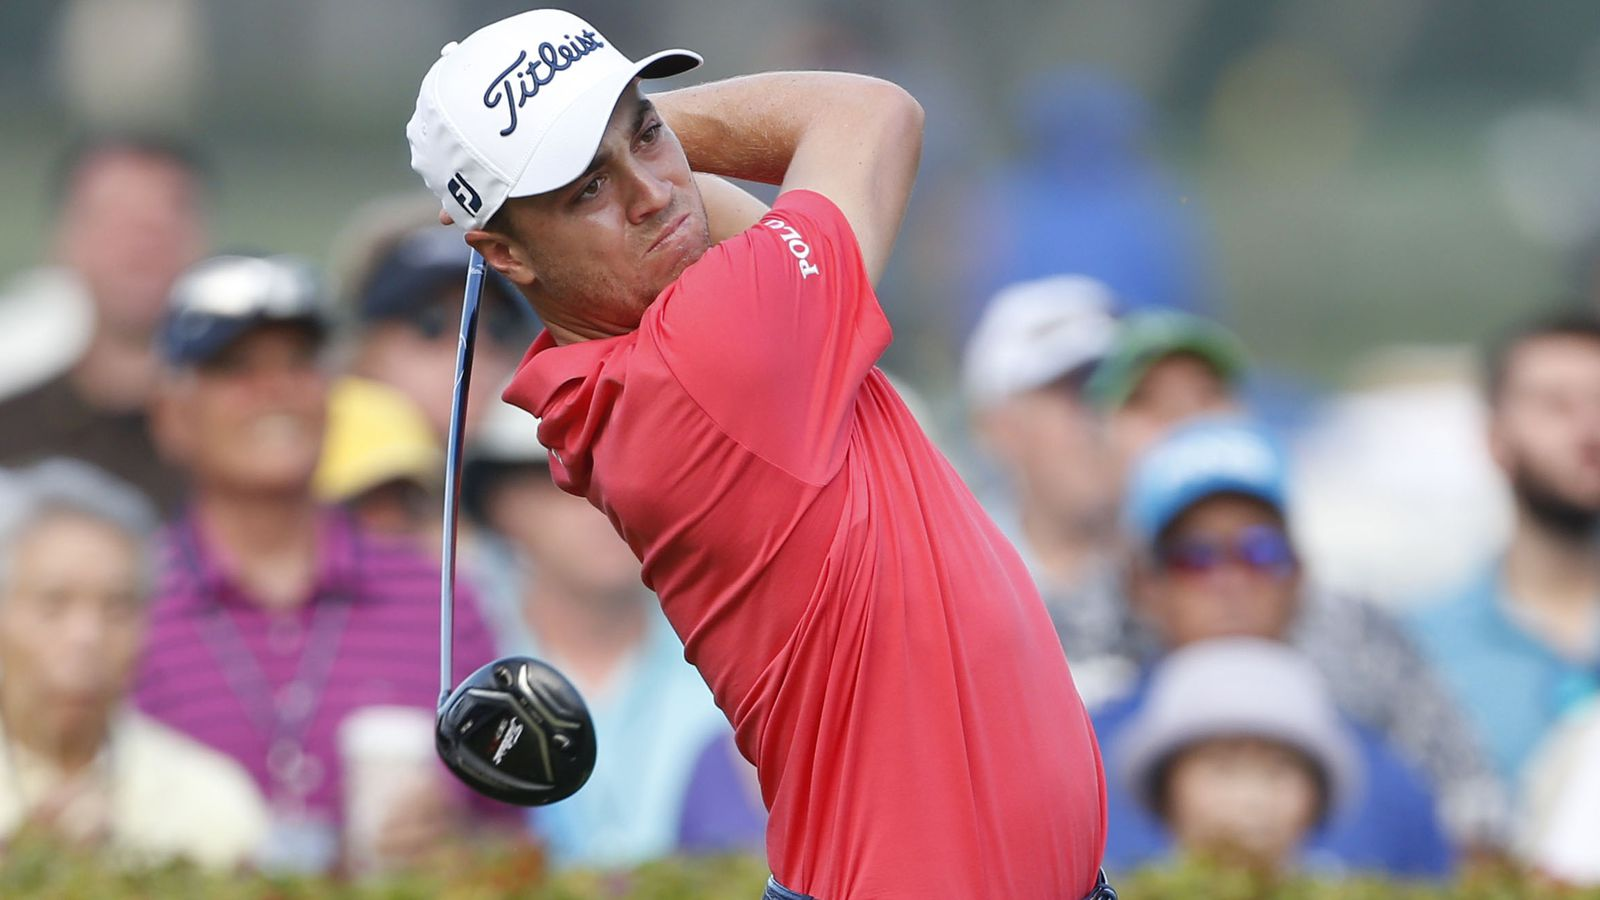 Justin Thomas shoots 59, makes history at the Sony Open